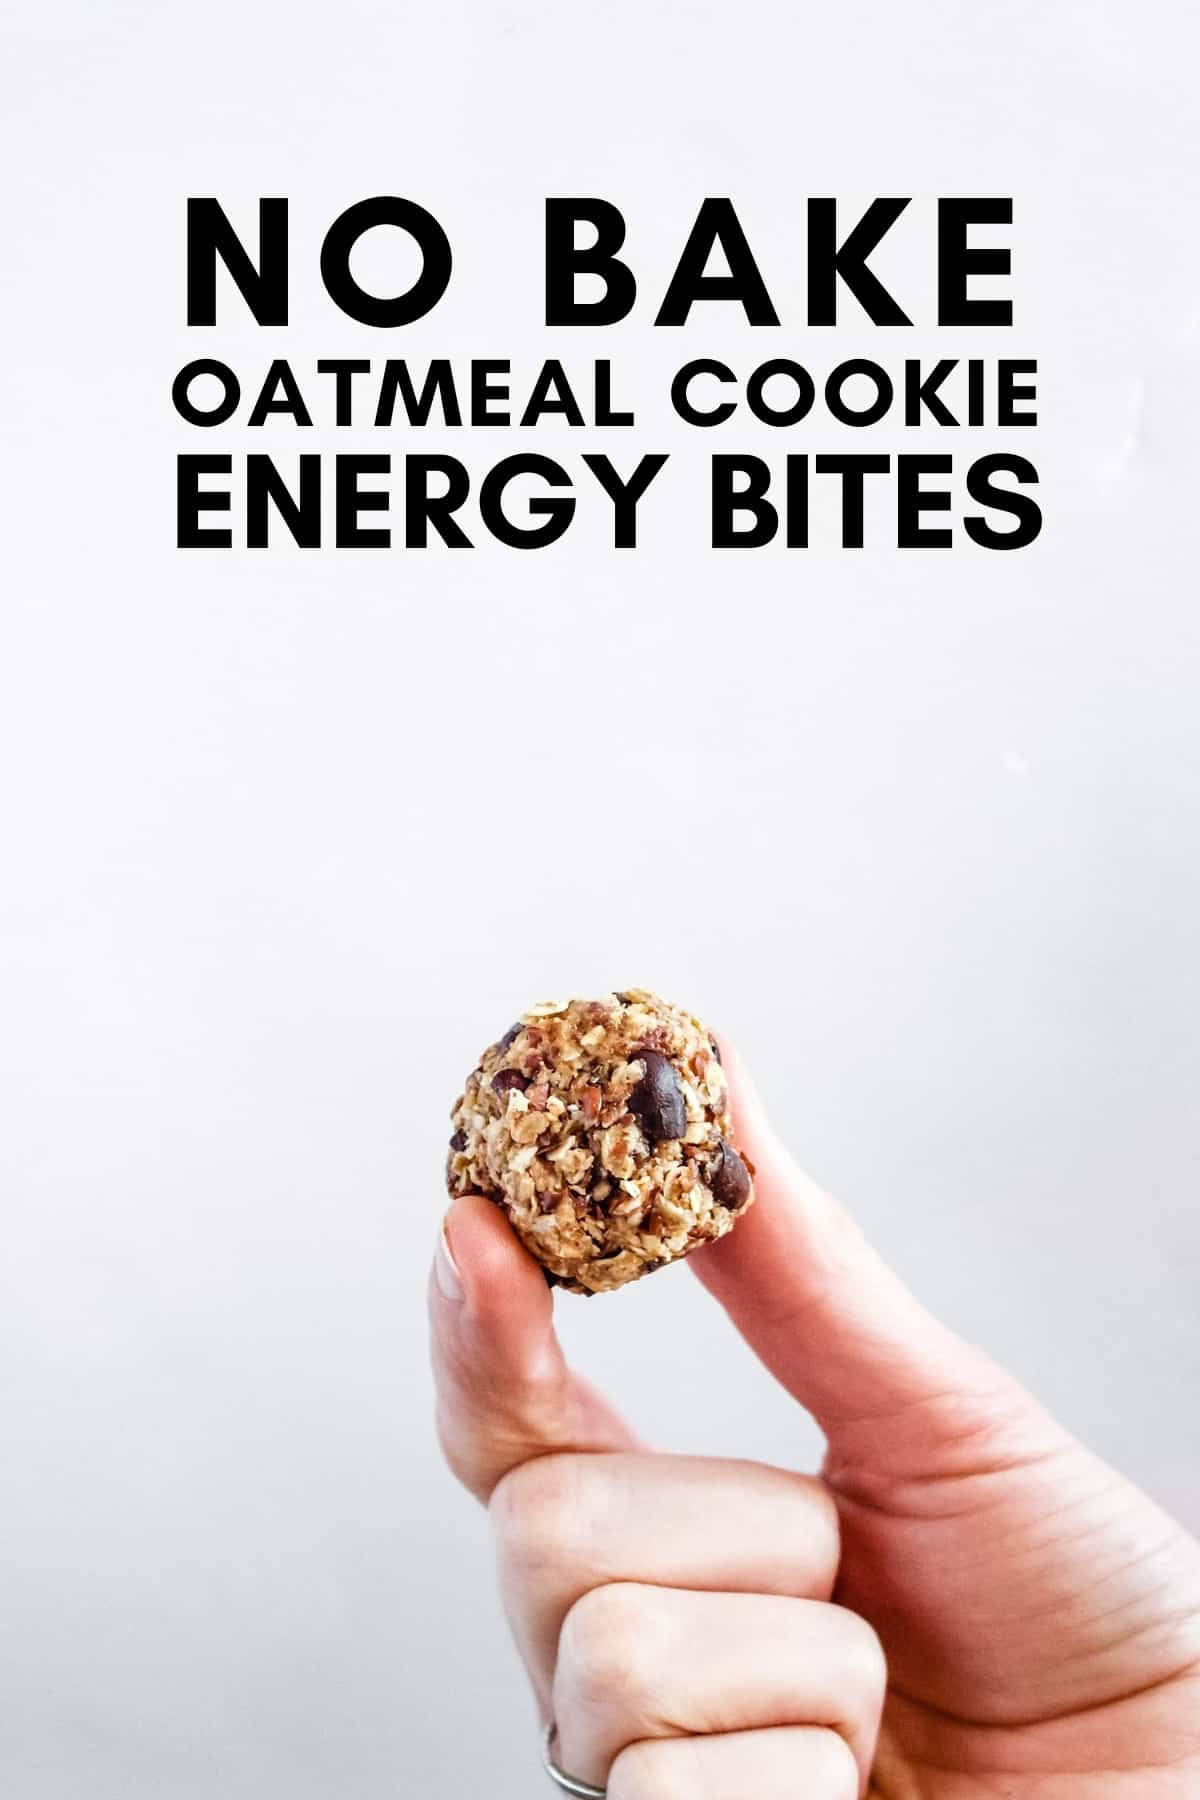 A hand hold ups a no bake oatmeal cookie energy bite against a white background.